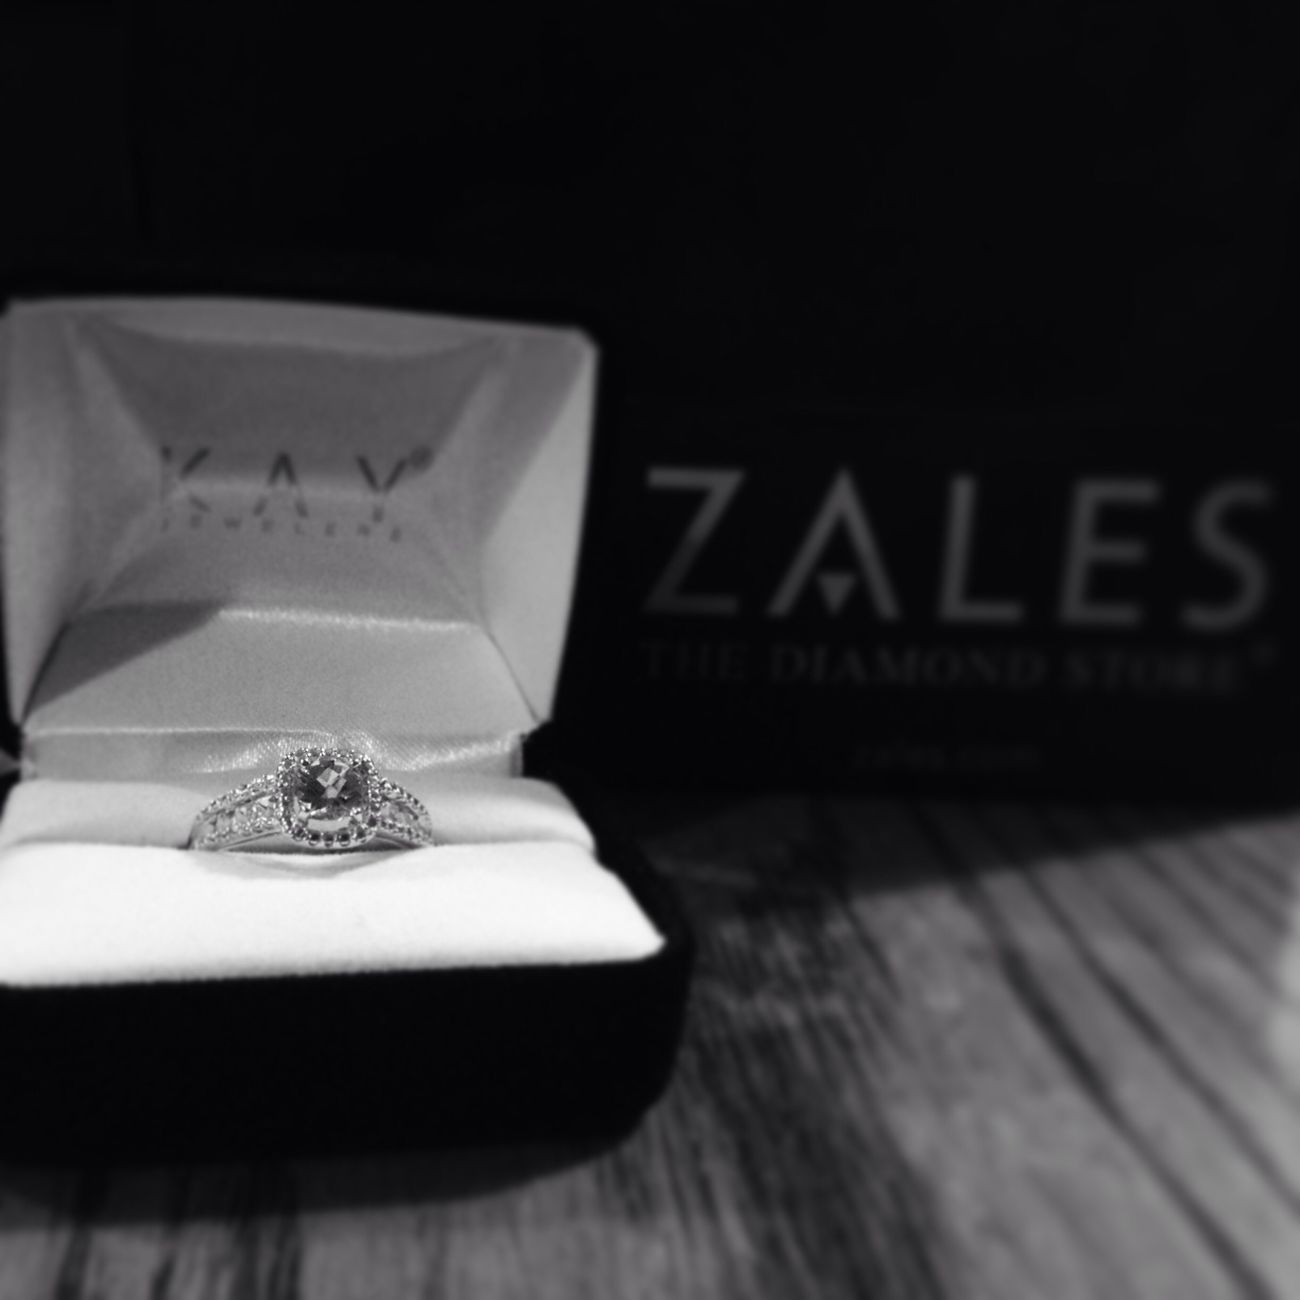 My promise ring that my daddy bought me